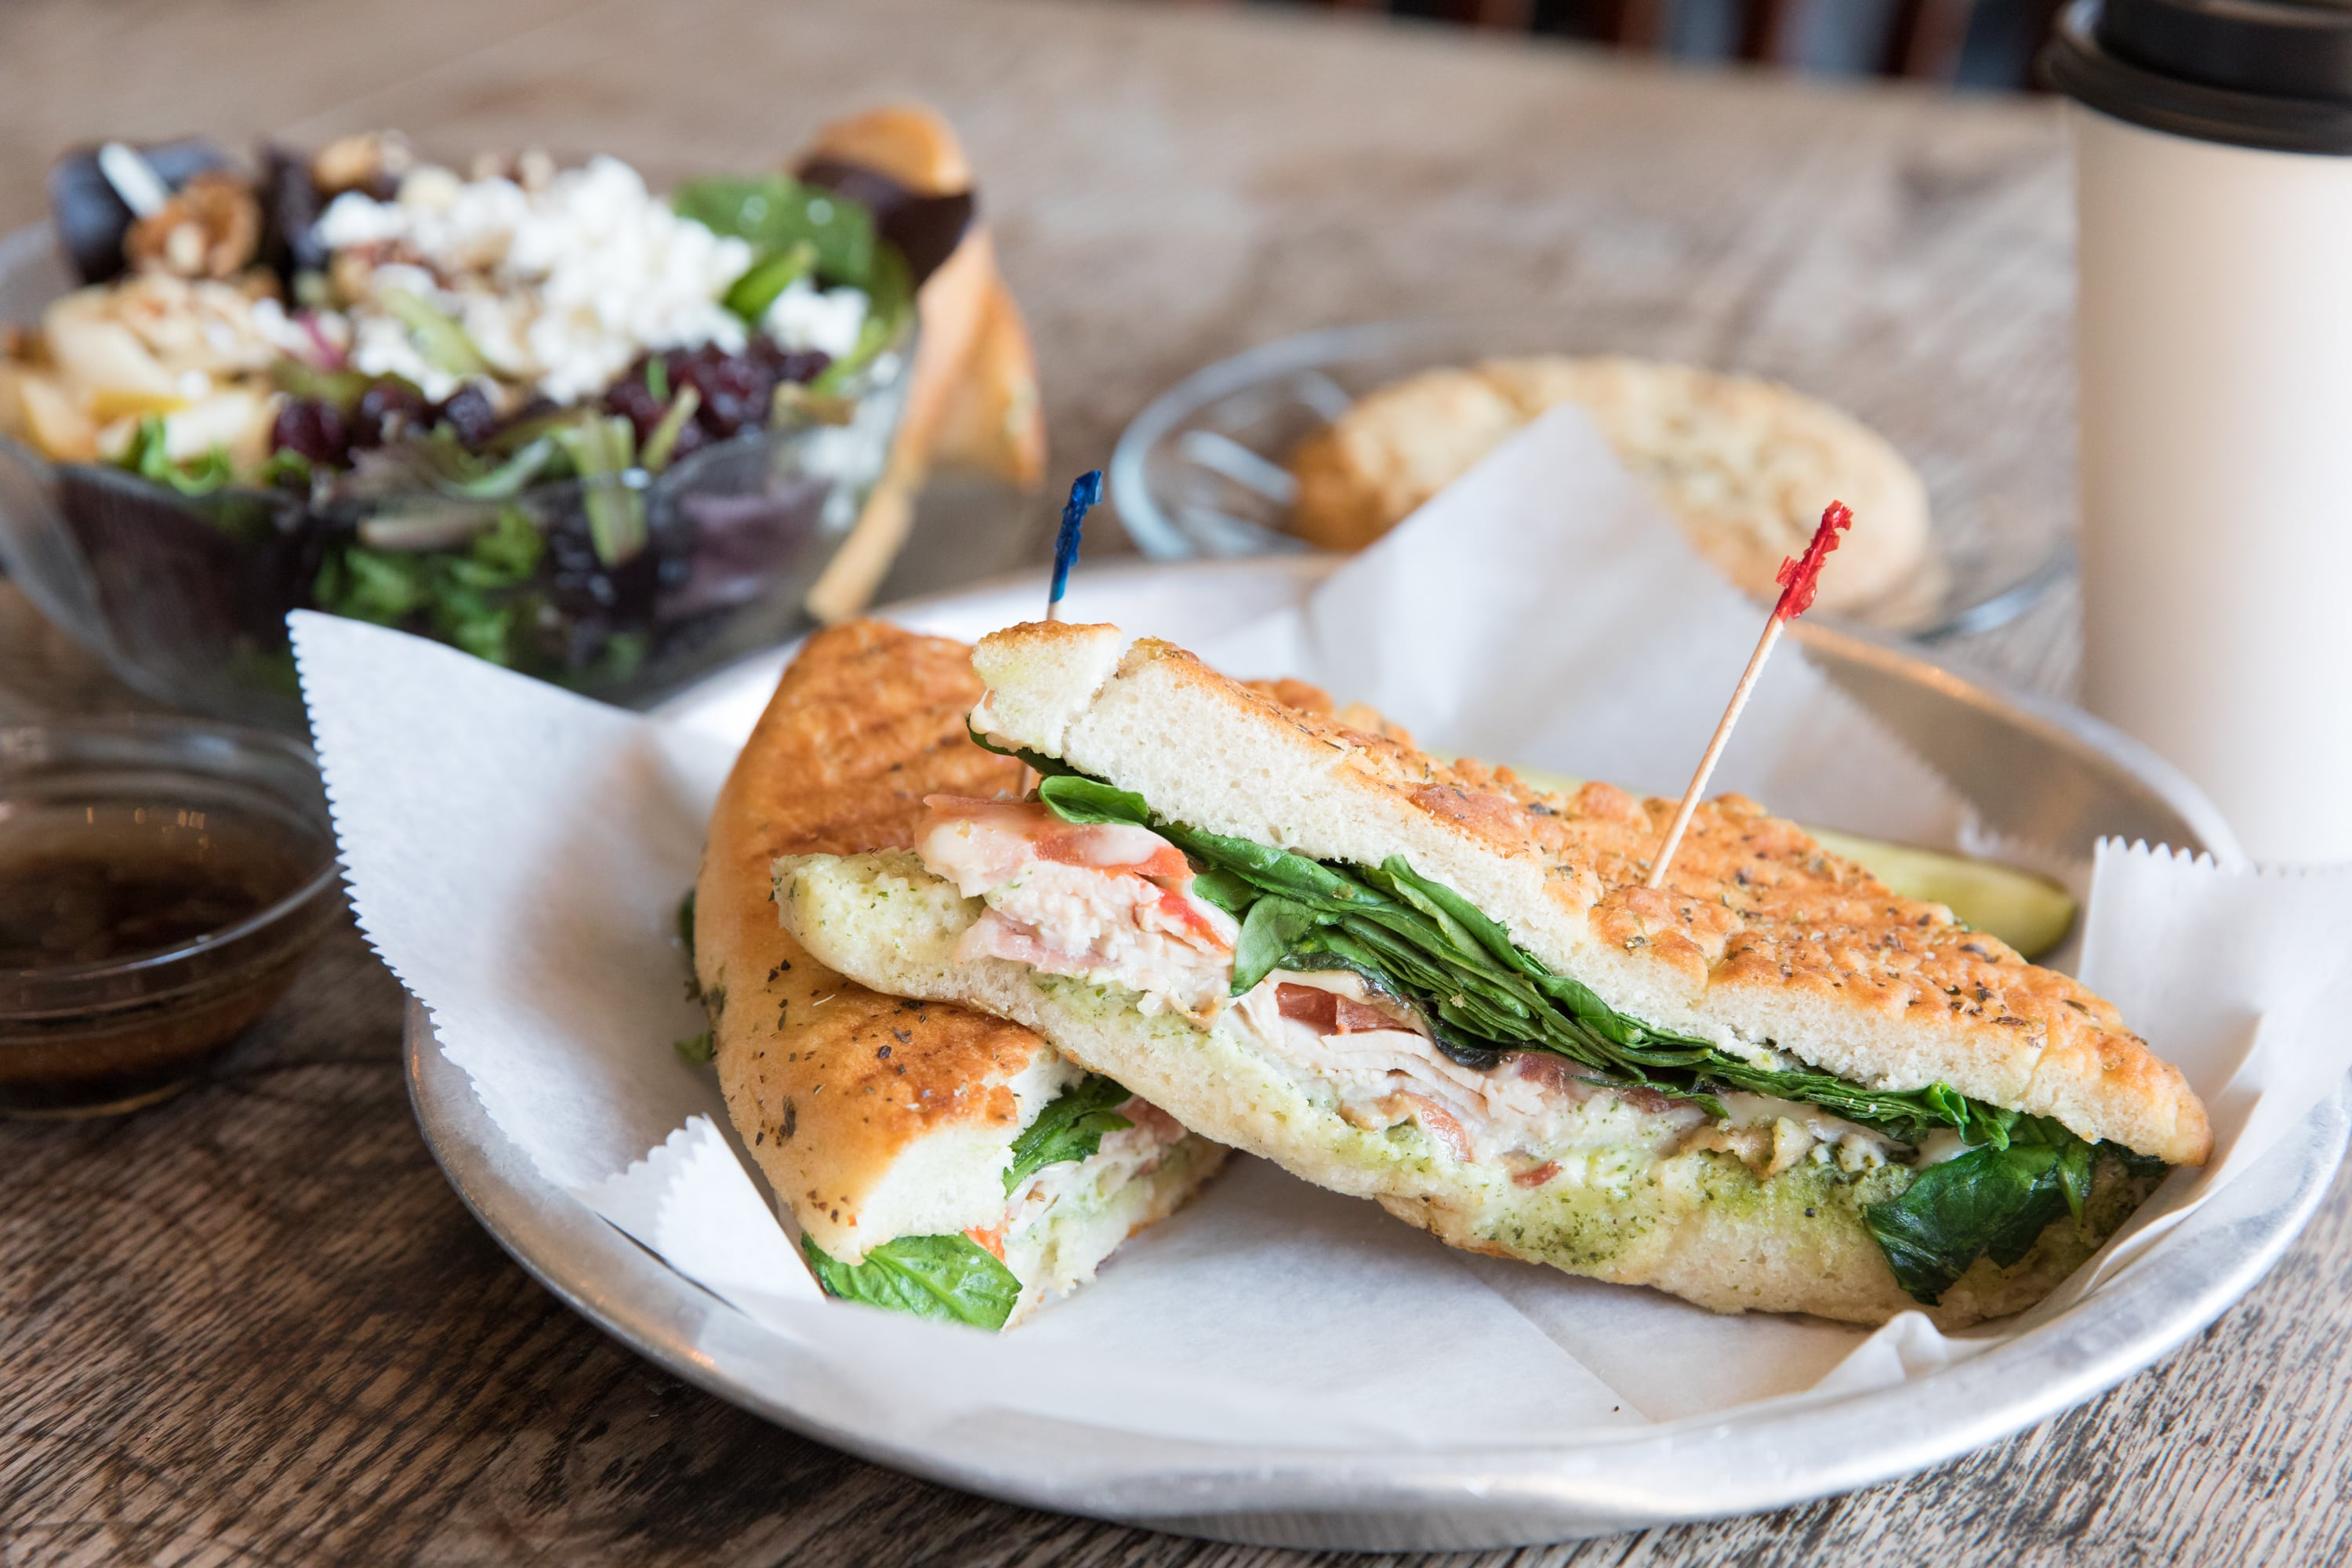 Check out this sandwich and others, all part of Chicago's best sandwich catering spots.